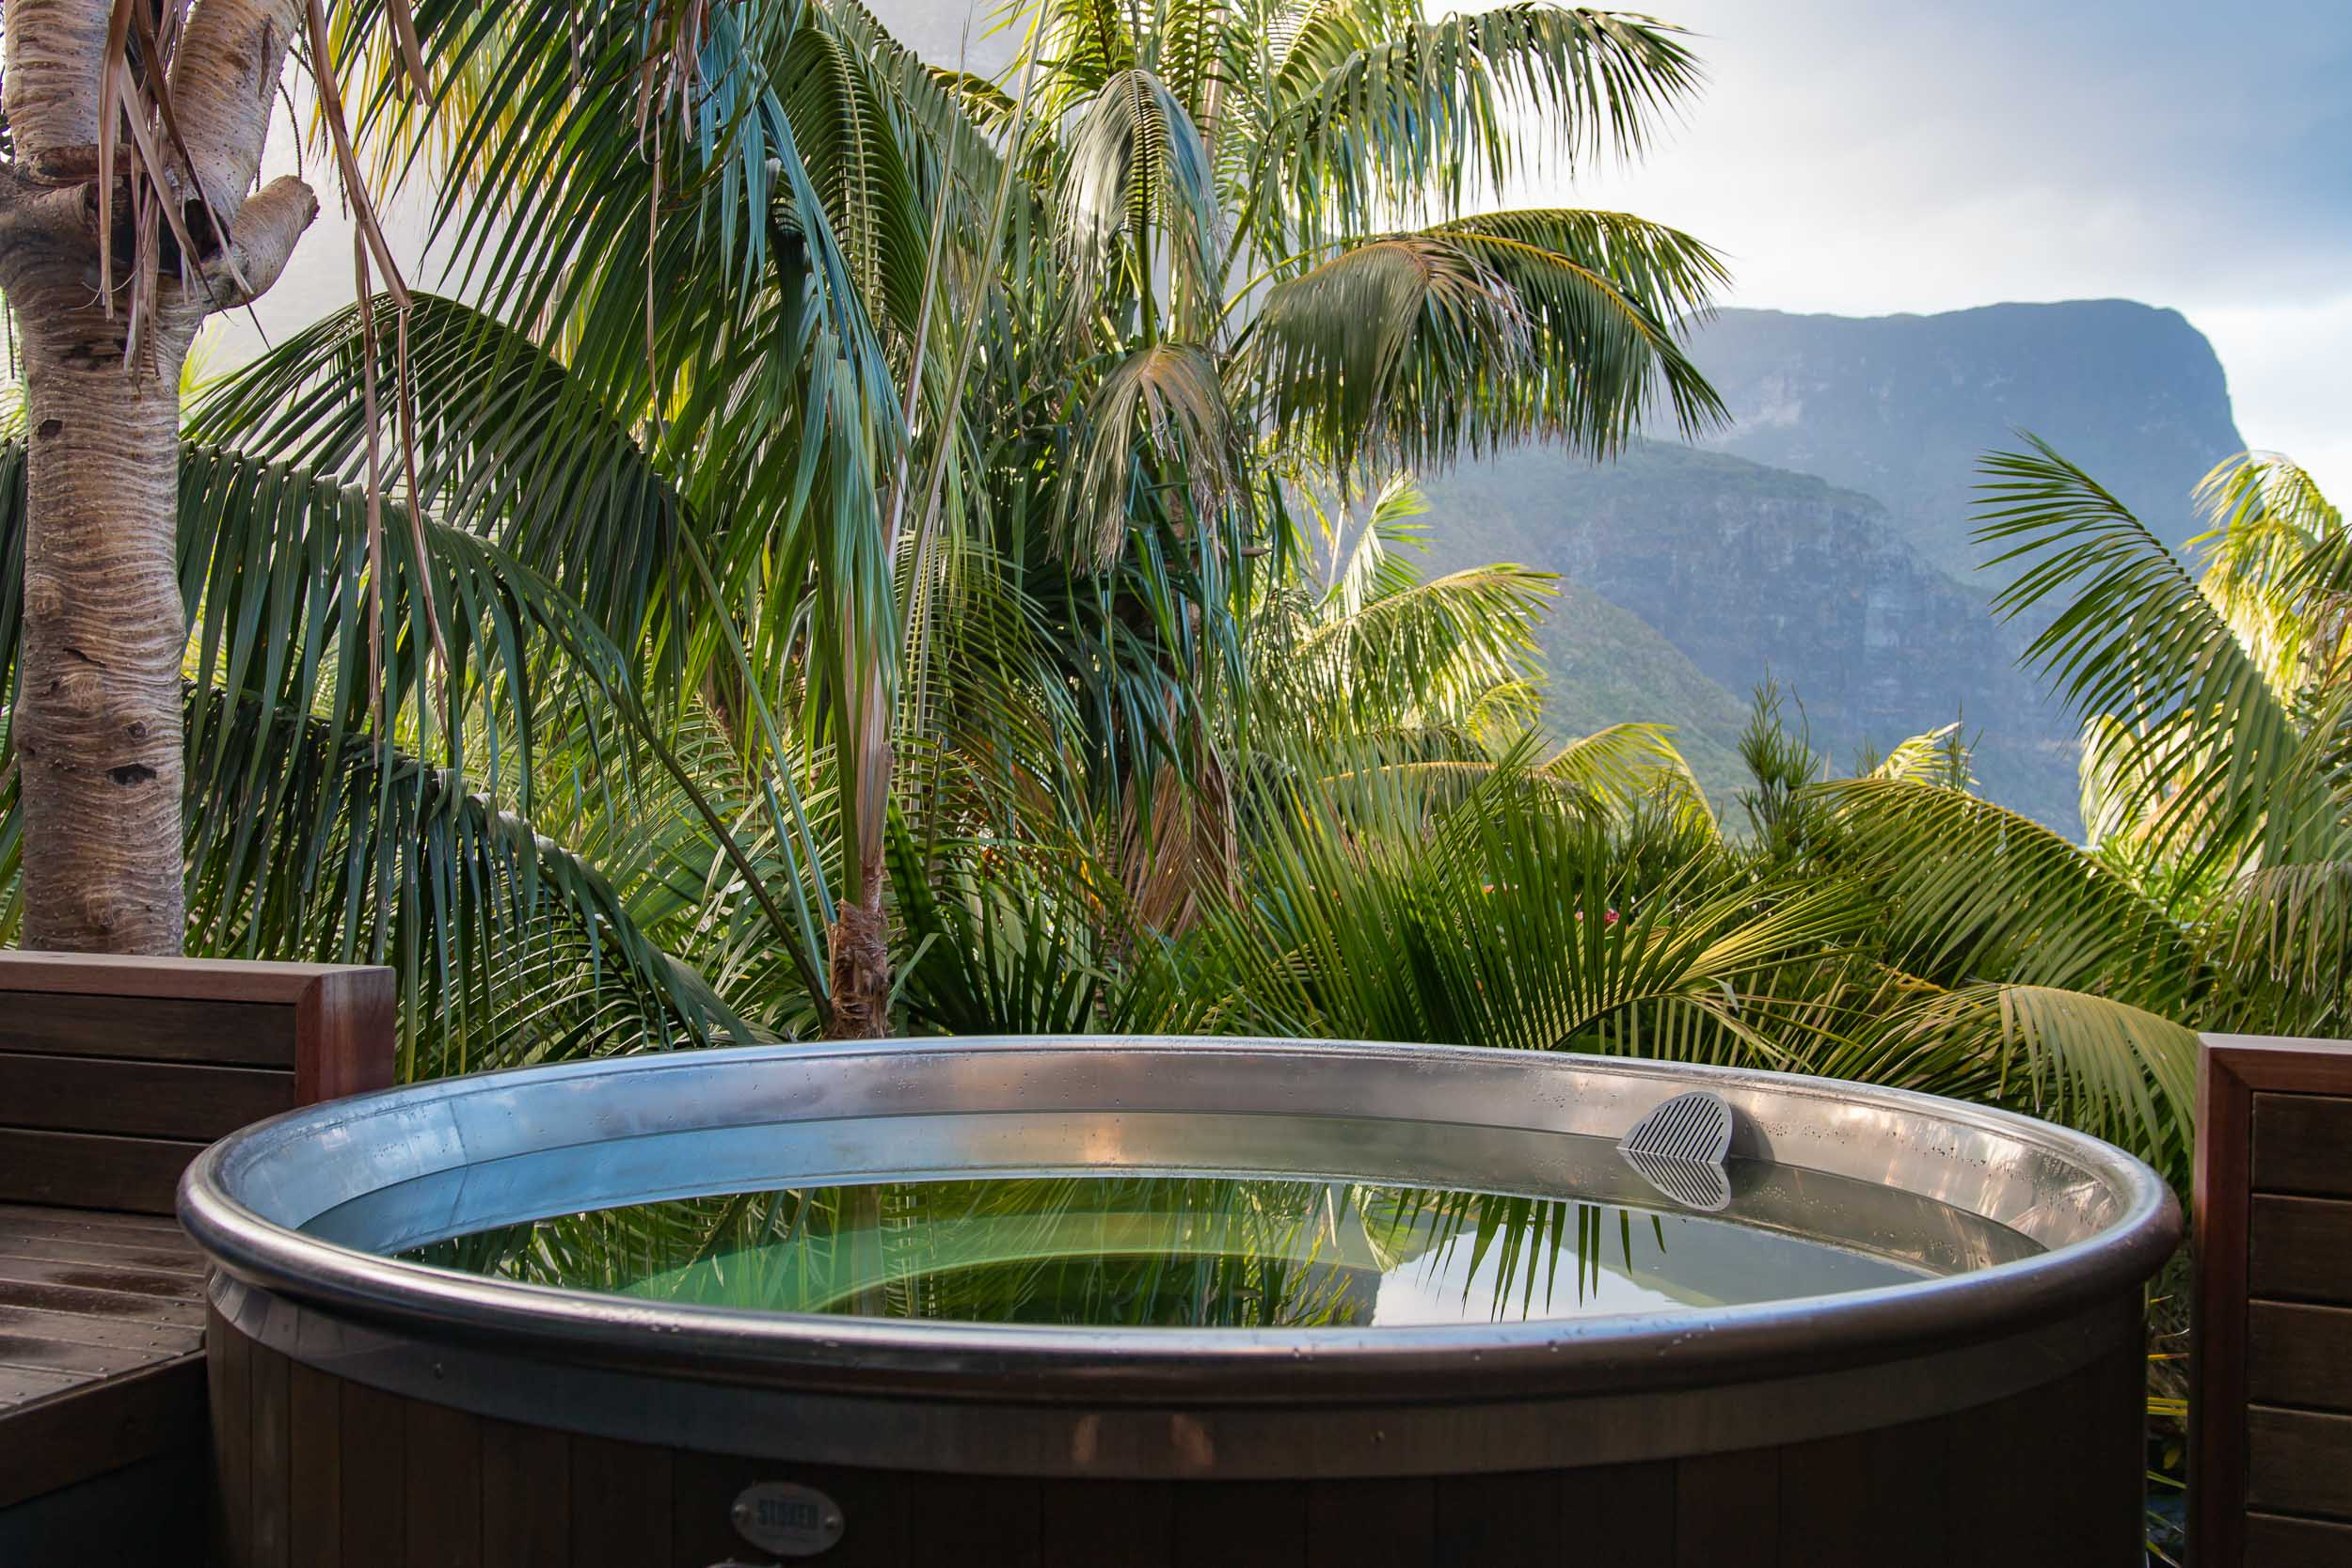 Capella Lodge, Lagoon Loft Room Hot Tub View, Lord Howe Island